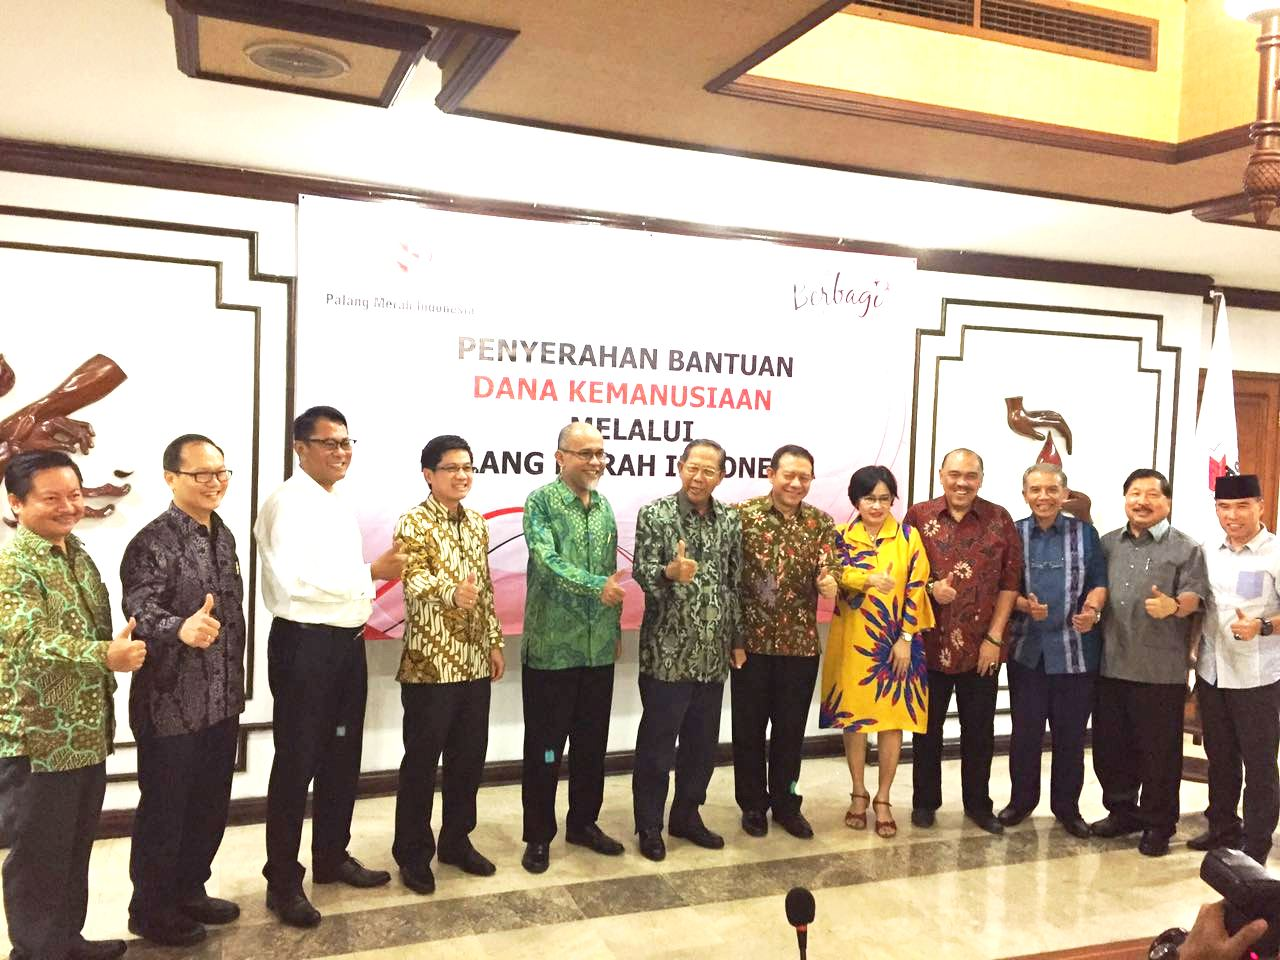 TOYOTA INDONESIA ONCE AGAIN DONATE TO PMI (Palang Merah Indonesia)